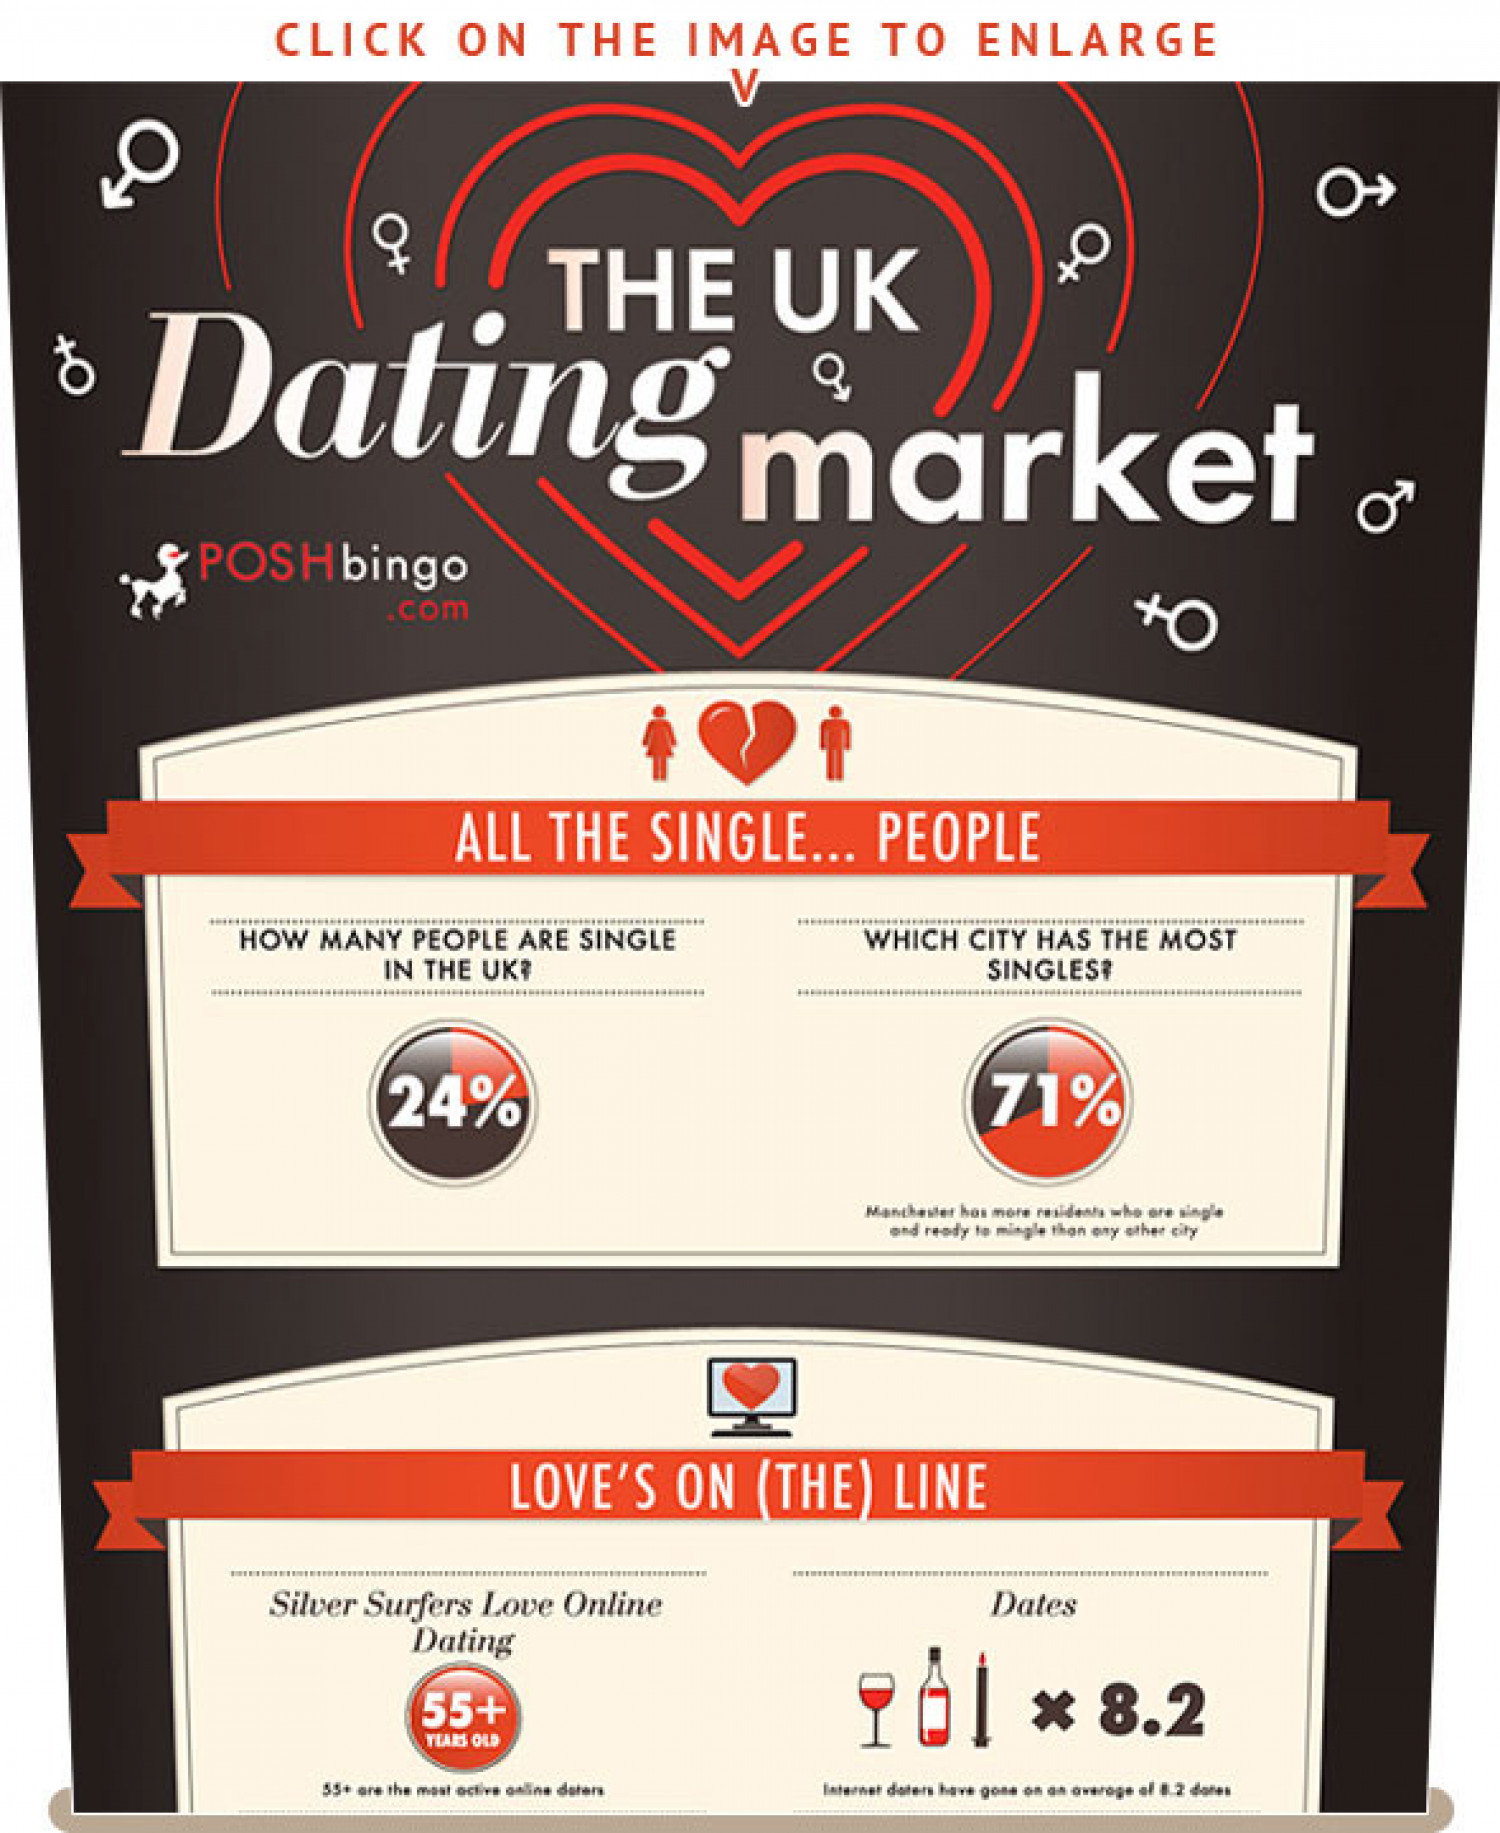 The UK Dating Market Infographic